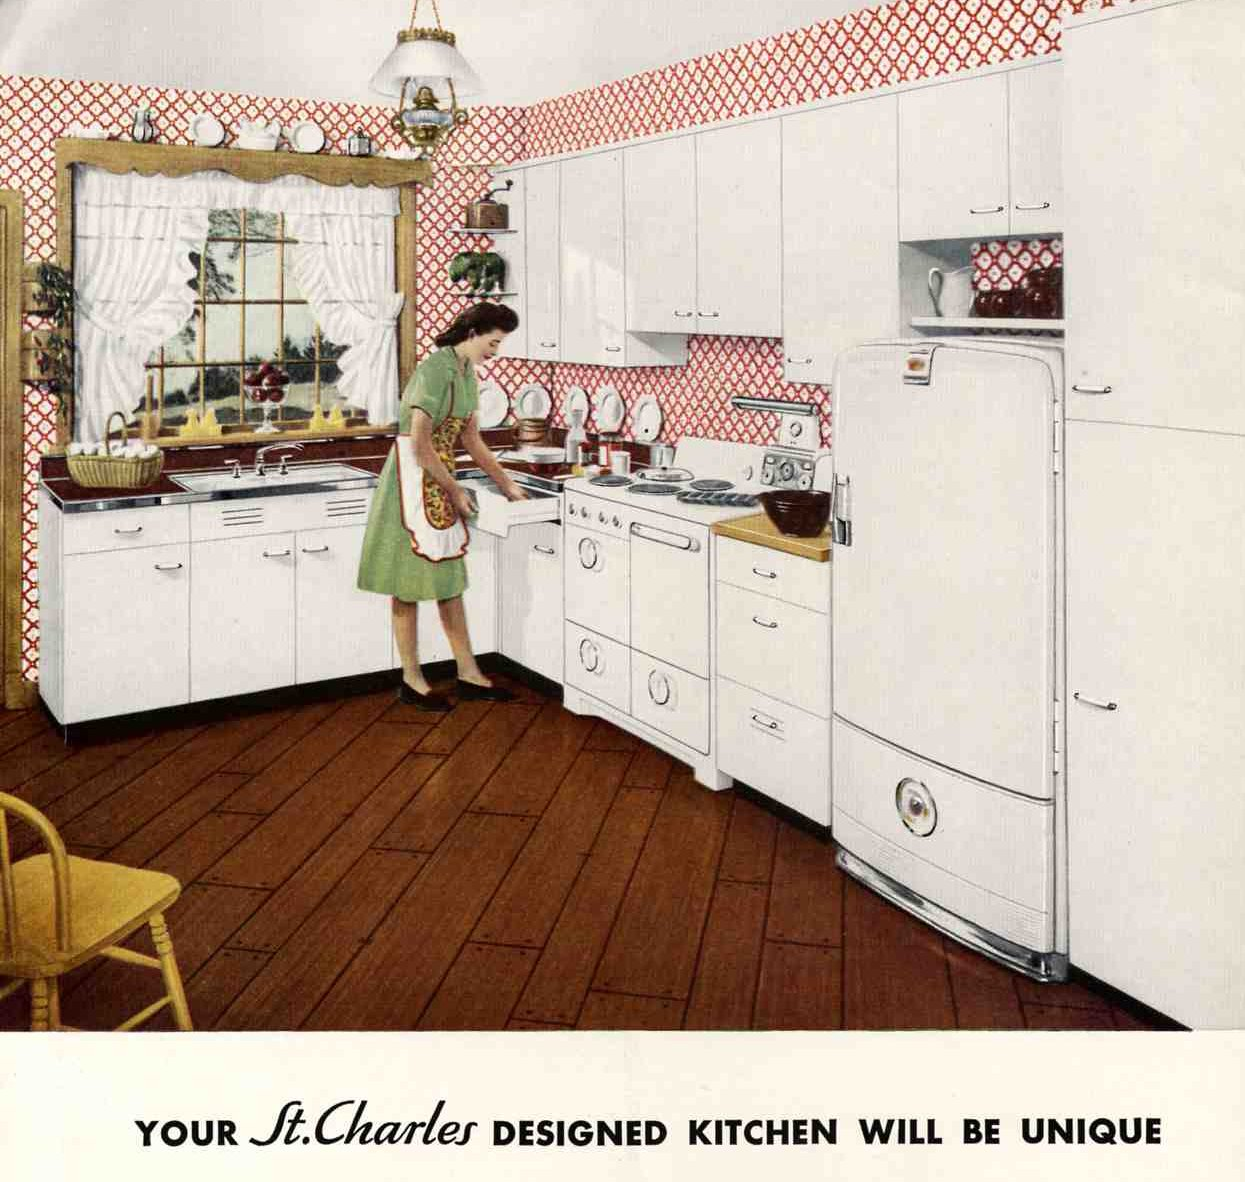 1948 was a very good year: Awesome retro kitchens and Cary Grant's Retro S Kitchen Design Ideas Html on retro kitchen curtains, retro modern house design, retro futuristic kitchen, retro bowling ideas, retro bar designs, retro bakery ideas, retro kitchen layout, red design ideas, retro kitchen decor, jamberry design ideas, retro kitchen style, retro furniture ideas, retro decorating ideas, kitchenaid design ideas, 1950s kitchen ideas, retro vintage kitchen, retro minimalist kitchen, retro home ideas, older kitchen remodel ideas, retro kitchen themes,